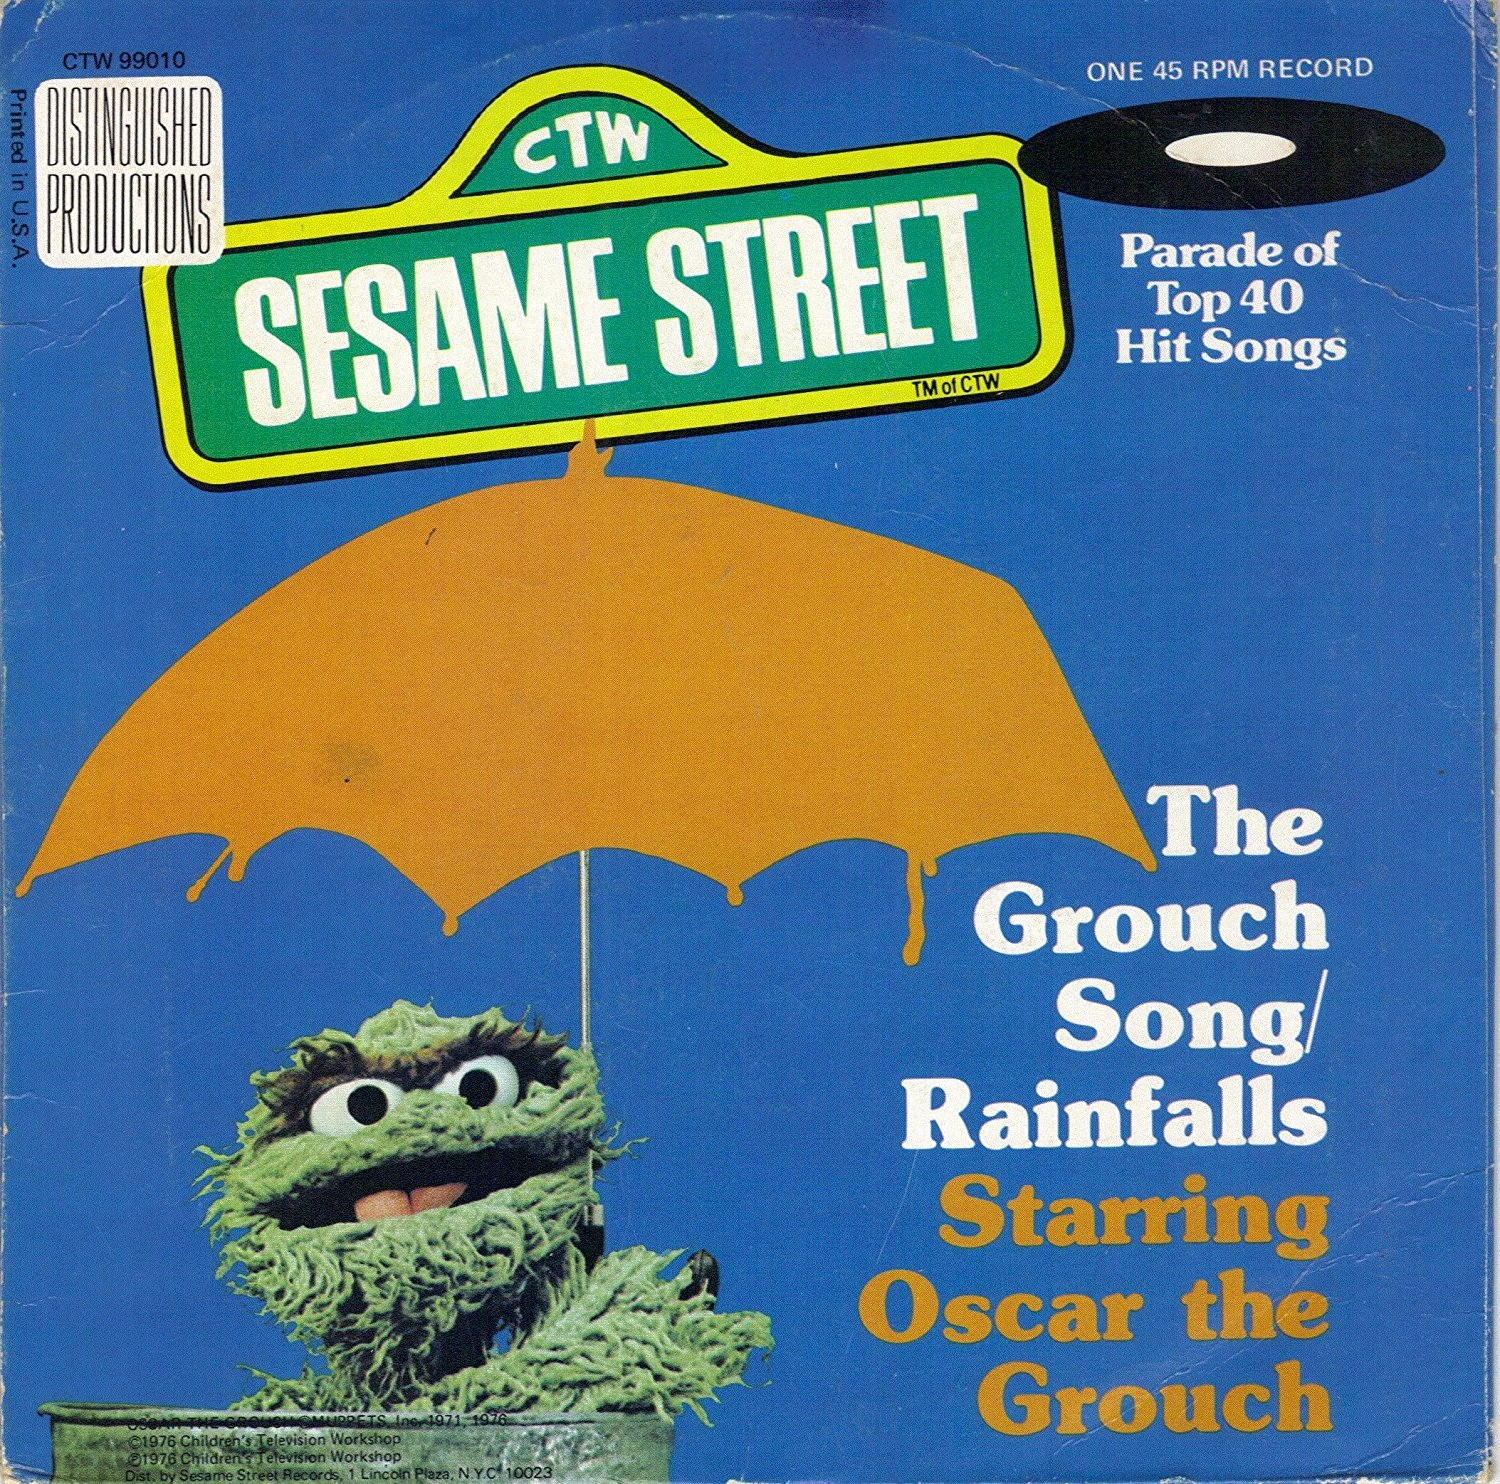 File:GrouchSongSingle.jpg